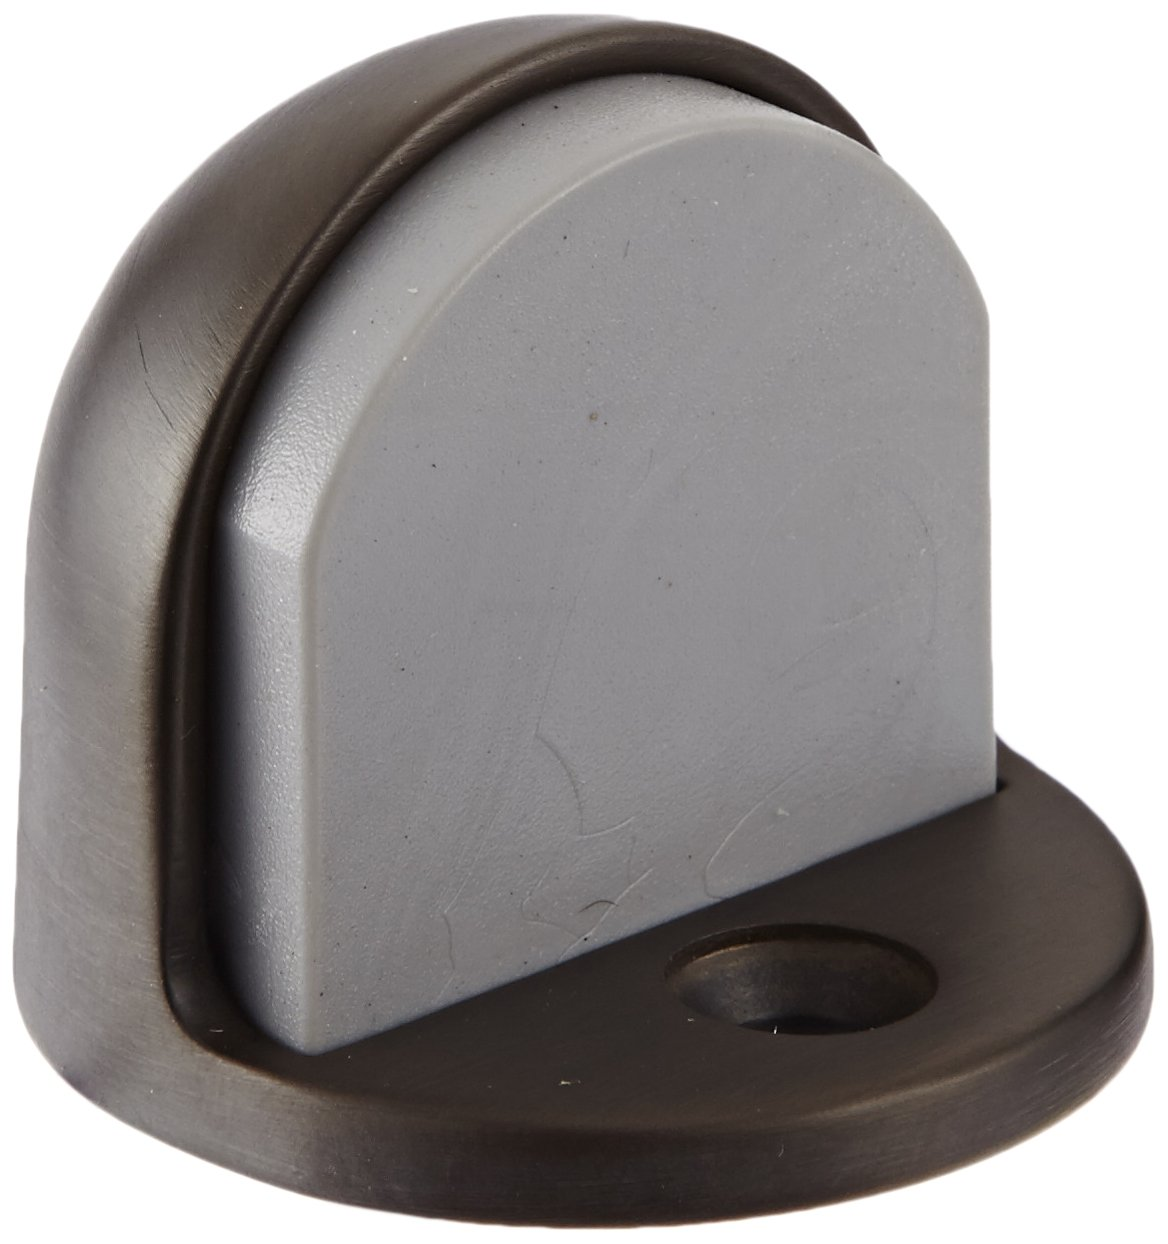 Rockwood 441H.10 Bronze Floor Mount Cast Universal Dome Stop #12 X 1-1//4 FH WS Fastener with Plastic Anchor and 12-24 x 1 FH MS Fastener with Lead Anchor Satin Clear Coated Finish 1-7//8 Base Diameter x 7//32 Base Length